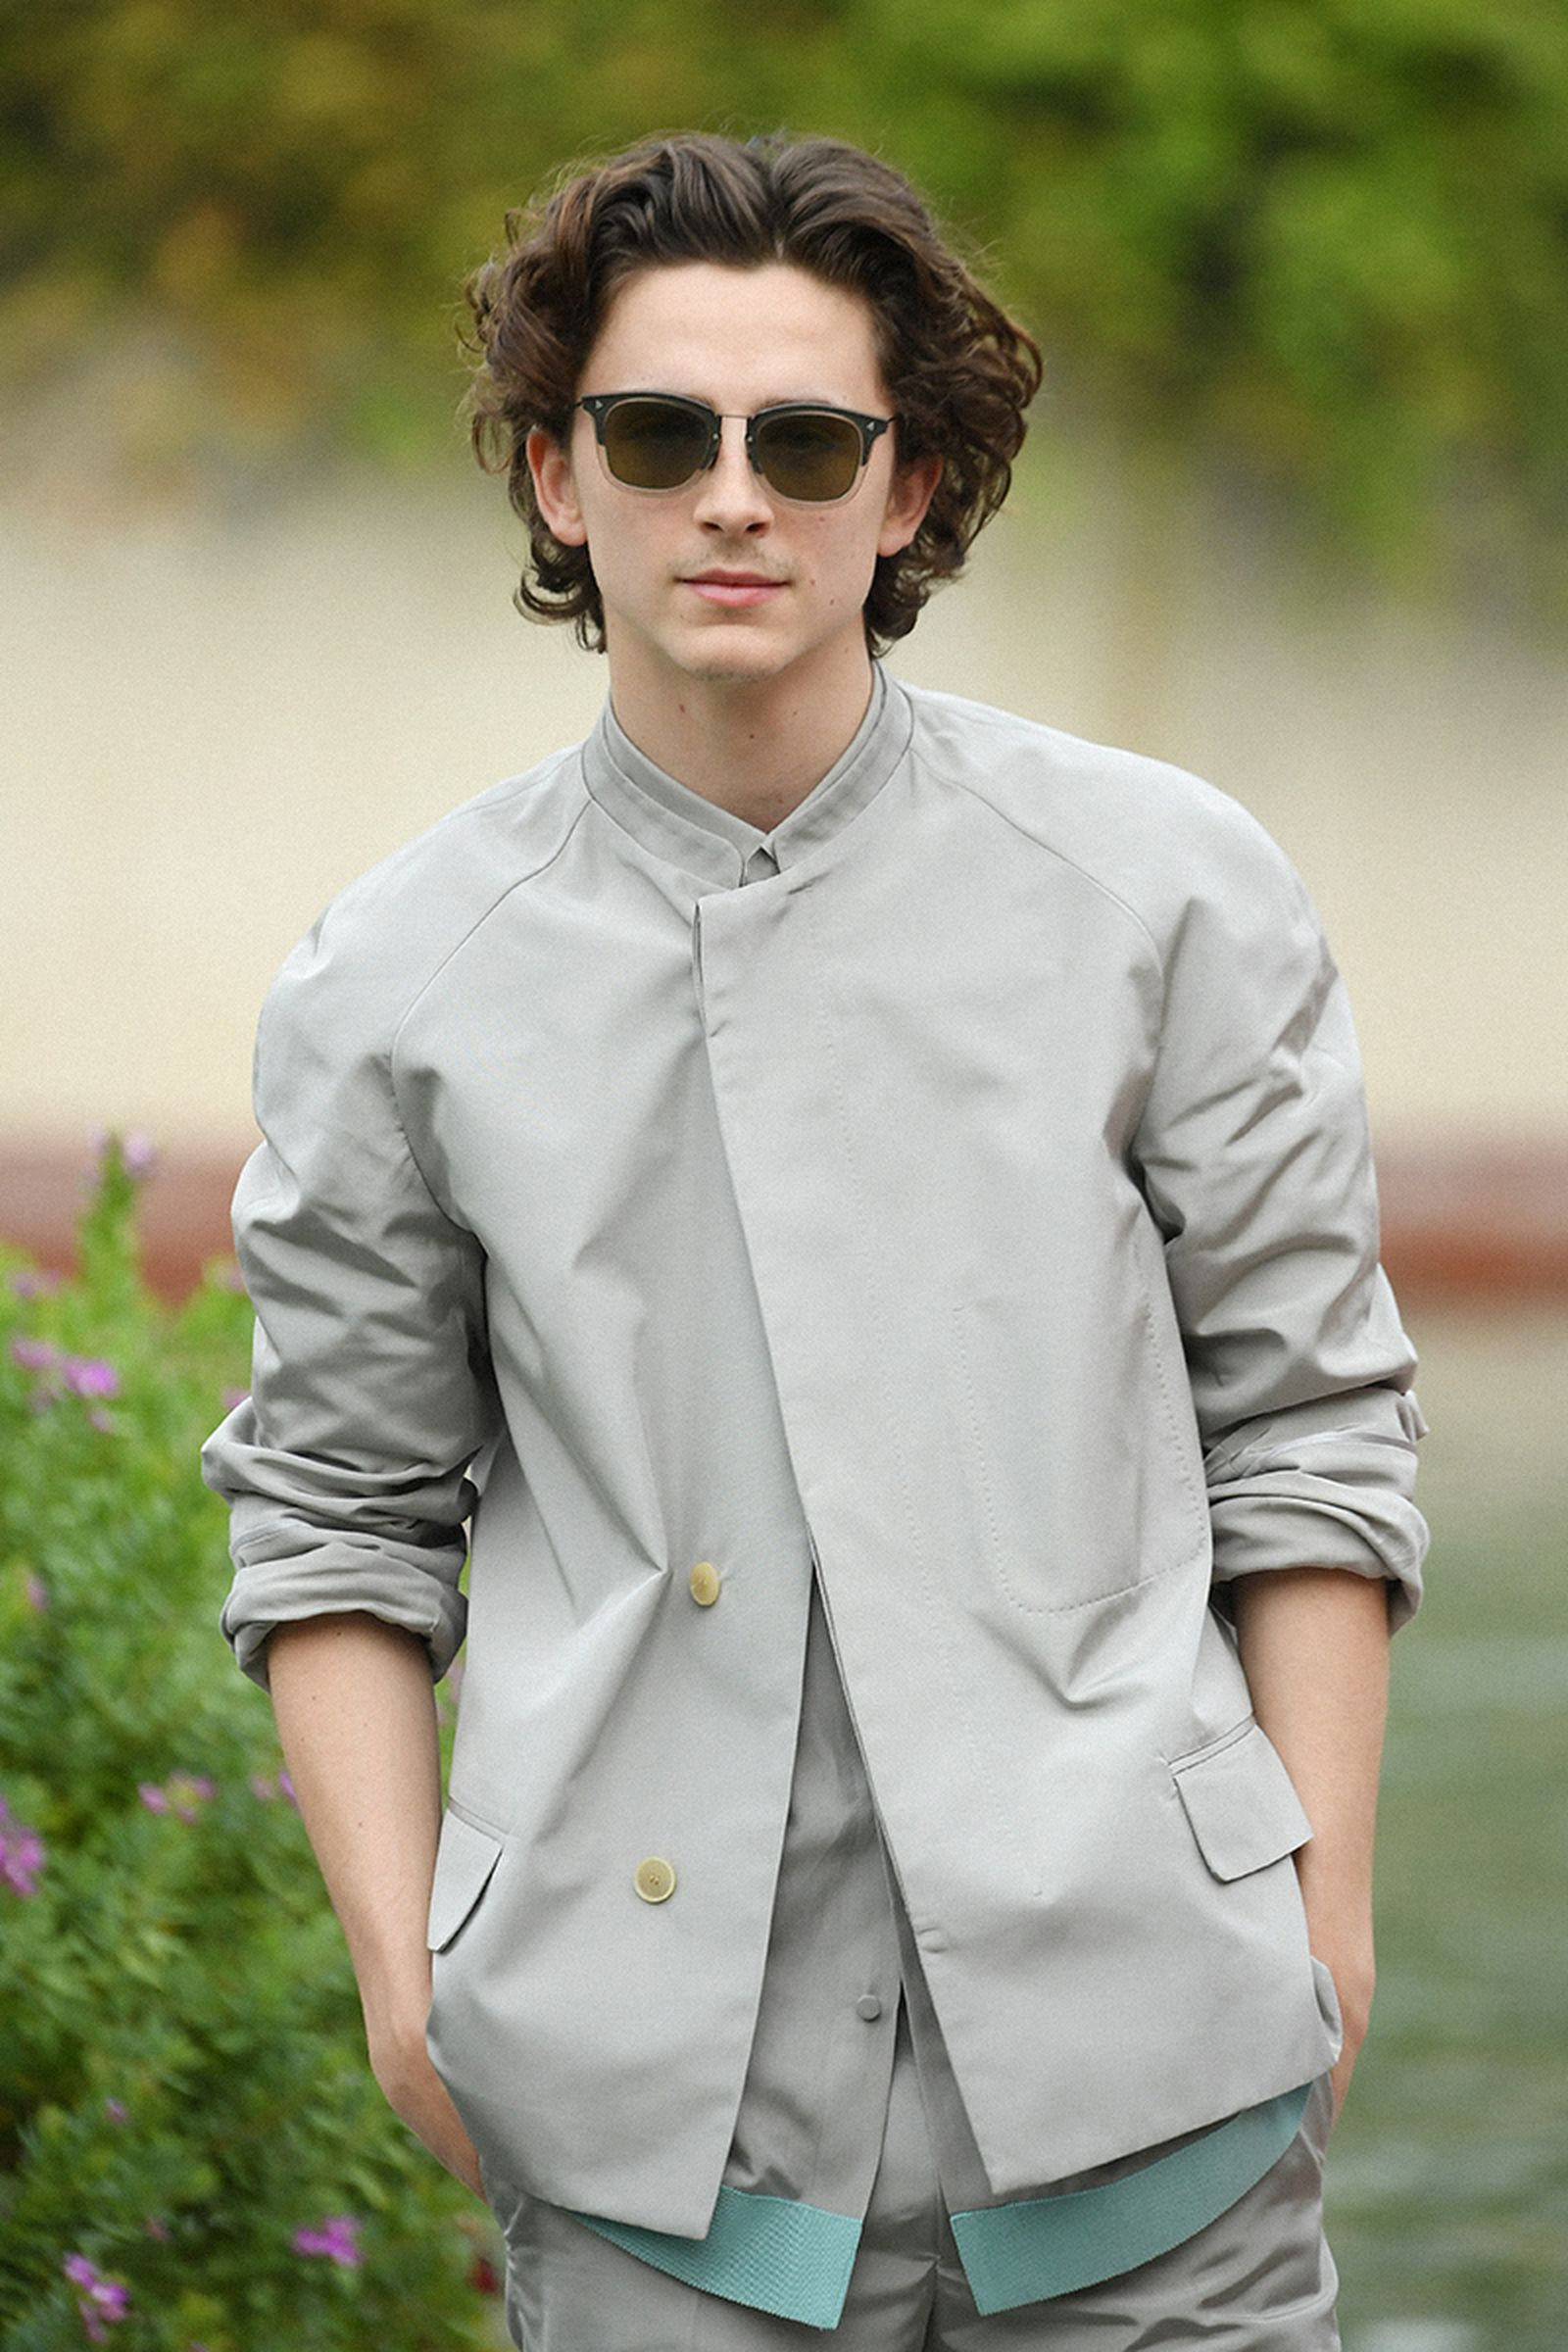 Timothee Chalamet is seen arriving at the 76th Venice Film Festival on September 02, 2019 in Venice, Italy.